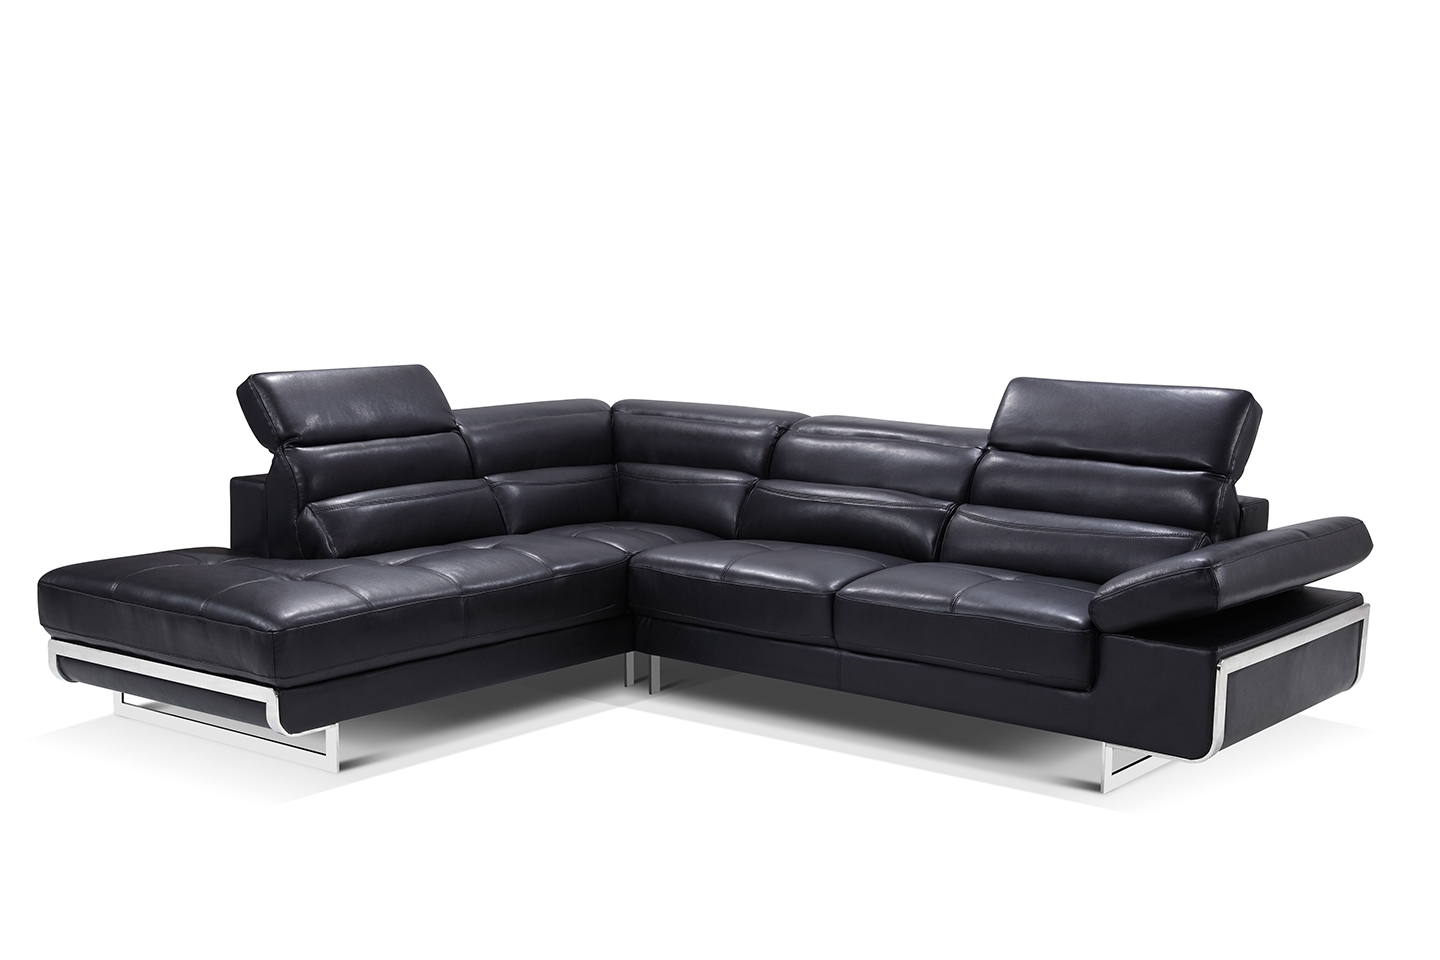 $2904.00 Charlotte Sectional Sofa | Sectional Sofas Jp-2347-Sec/3 in Charlotte Sectional Sofas (Image 1 of 10)